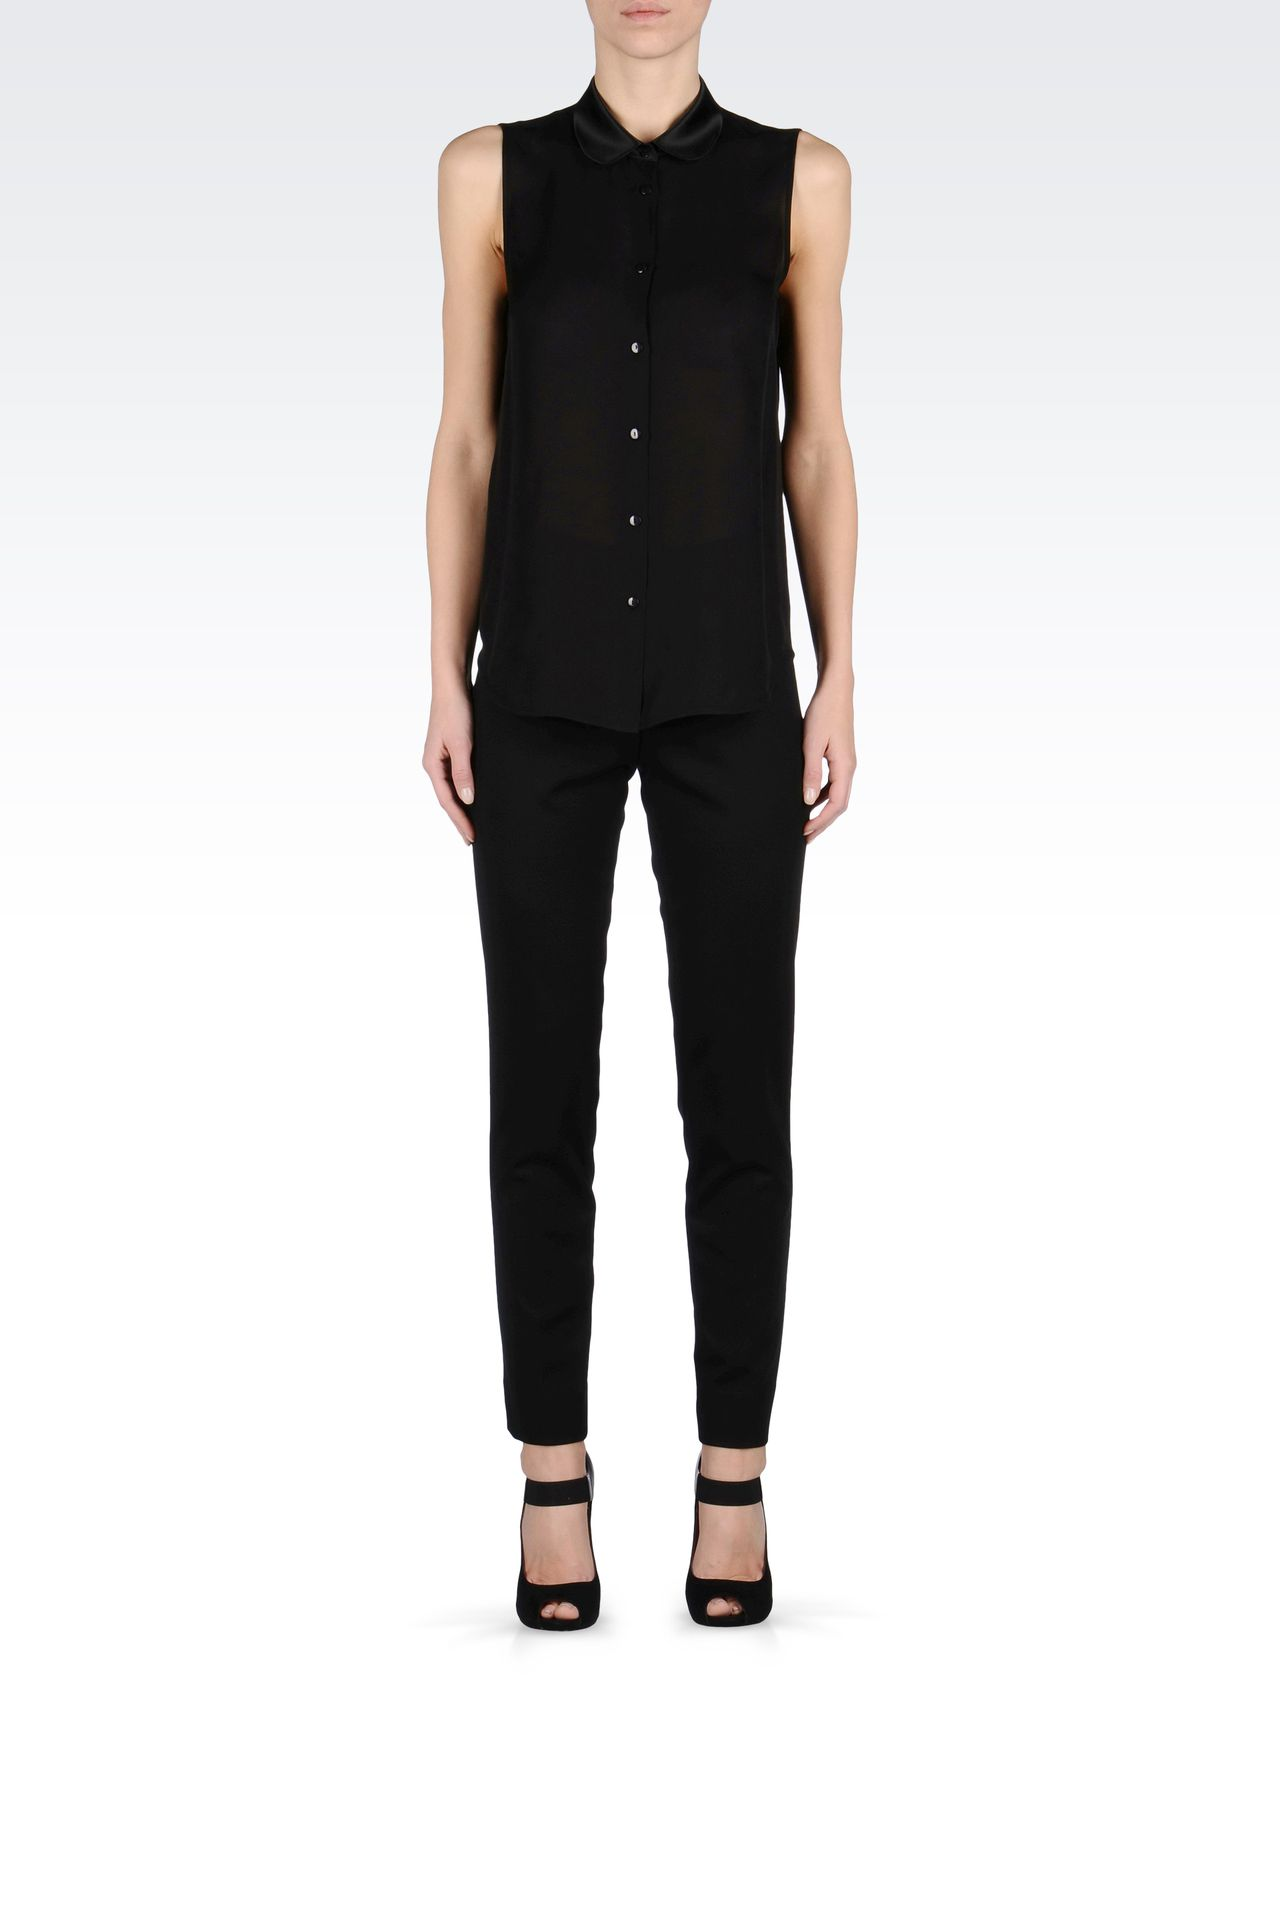 Emporio Armani Women Straight Leg Pant - CIGARETTE TROUSERS IN VISCOSE Emporio Armani Official Online Store